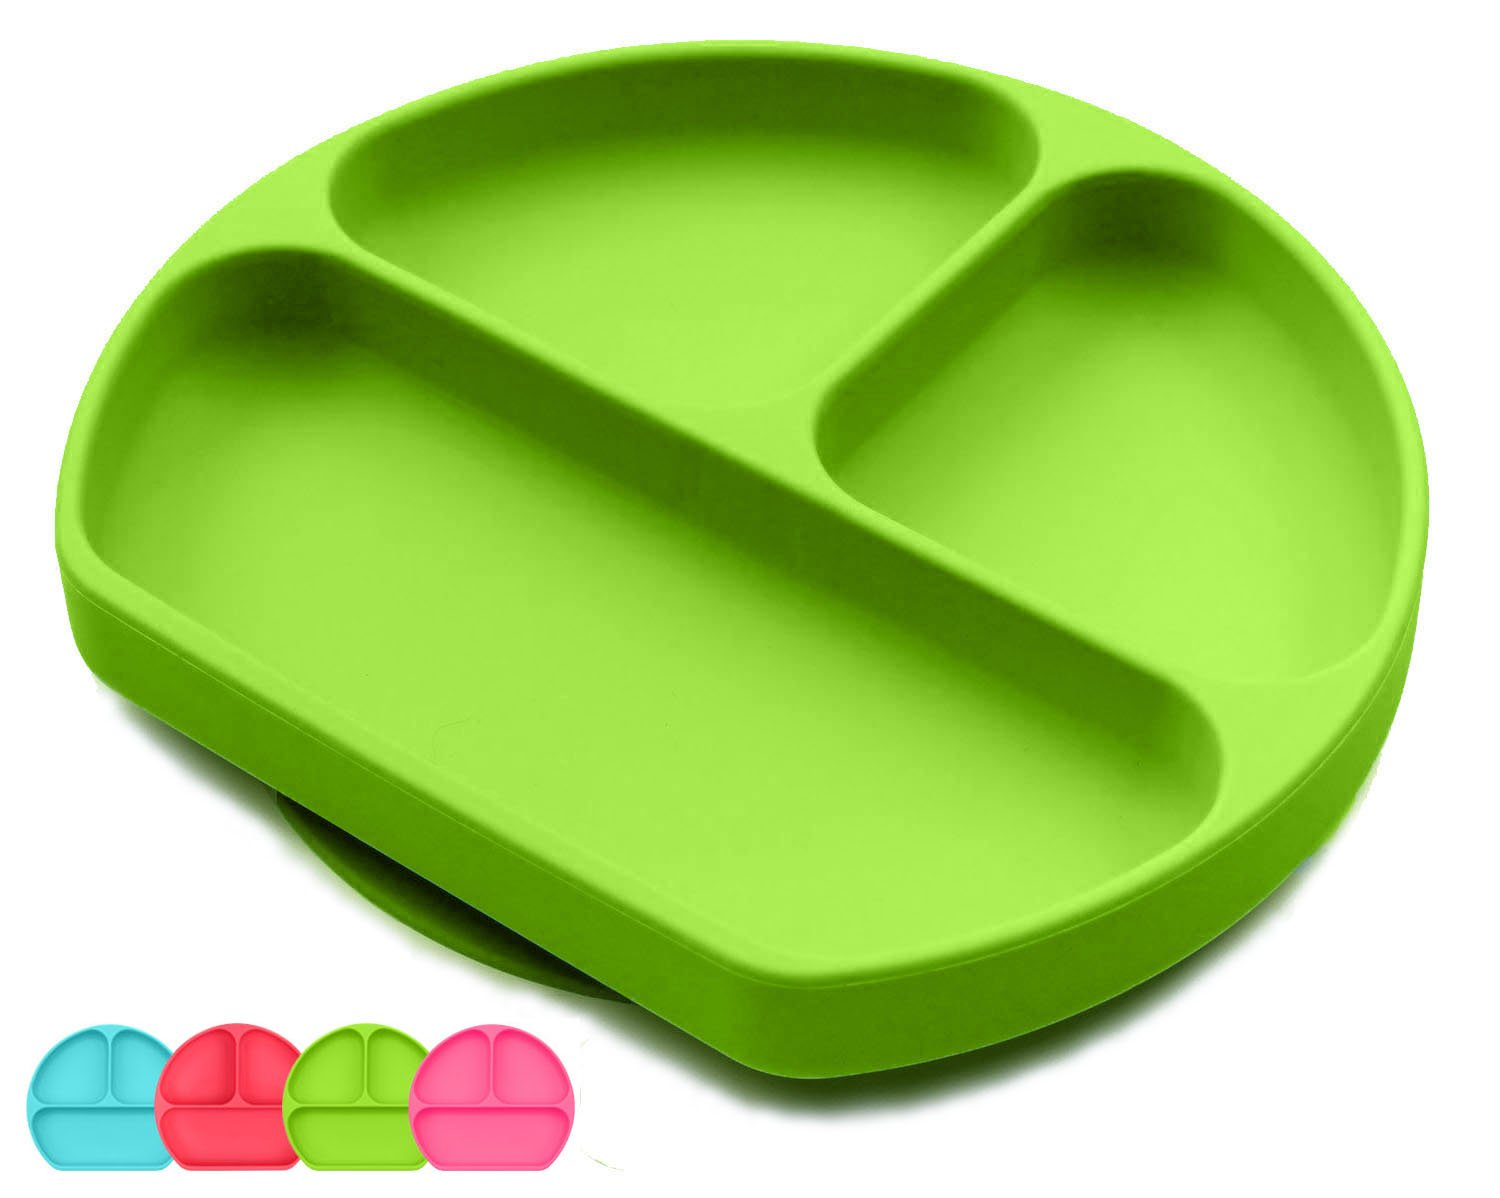 Toddler Suction Plate And Bowl That Stick To highChair, Non Slip Silicone Feeding Placemat For Babies, Infant, Divided Baby Dishes, Perfect Kids Plates, Dishwasher, Microwave Safe (Green)